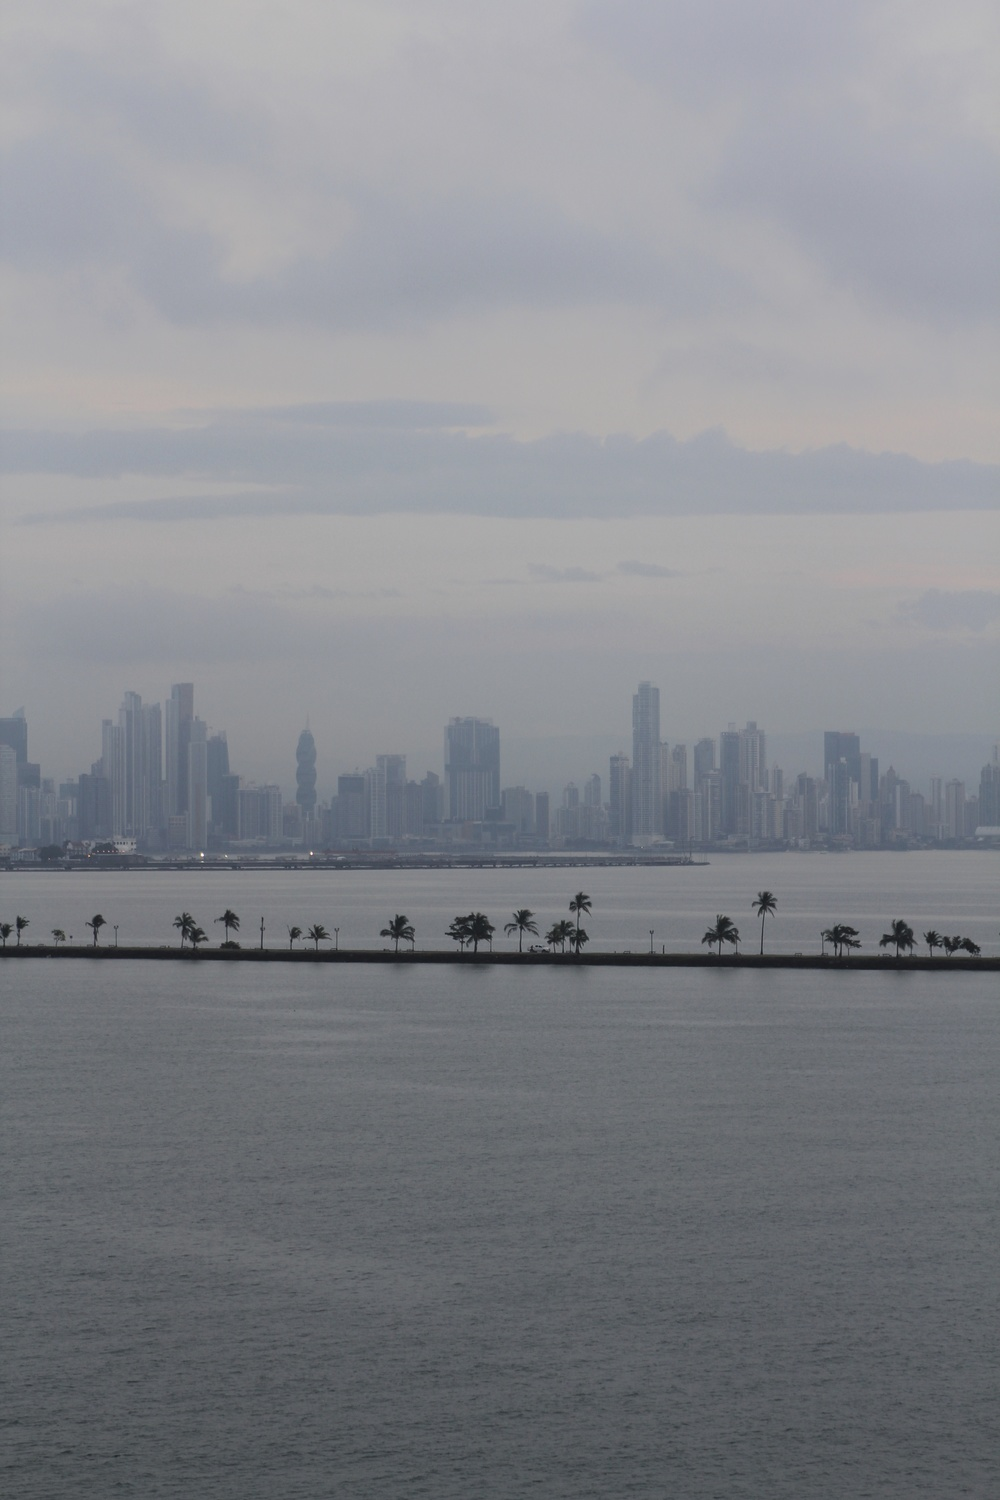 Panama City past the causeway.